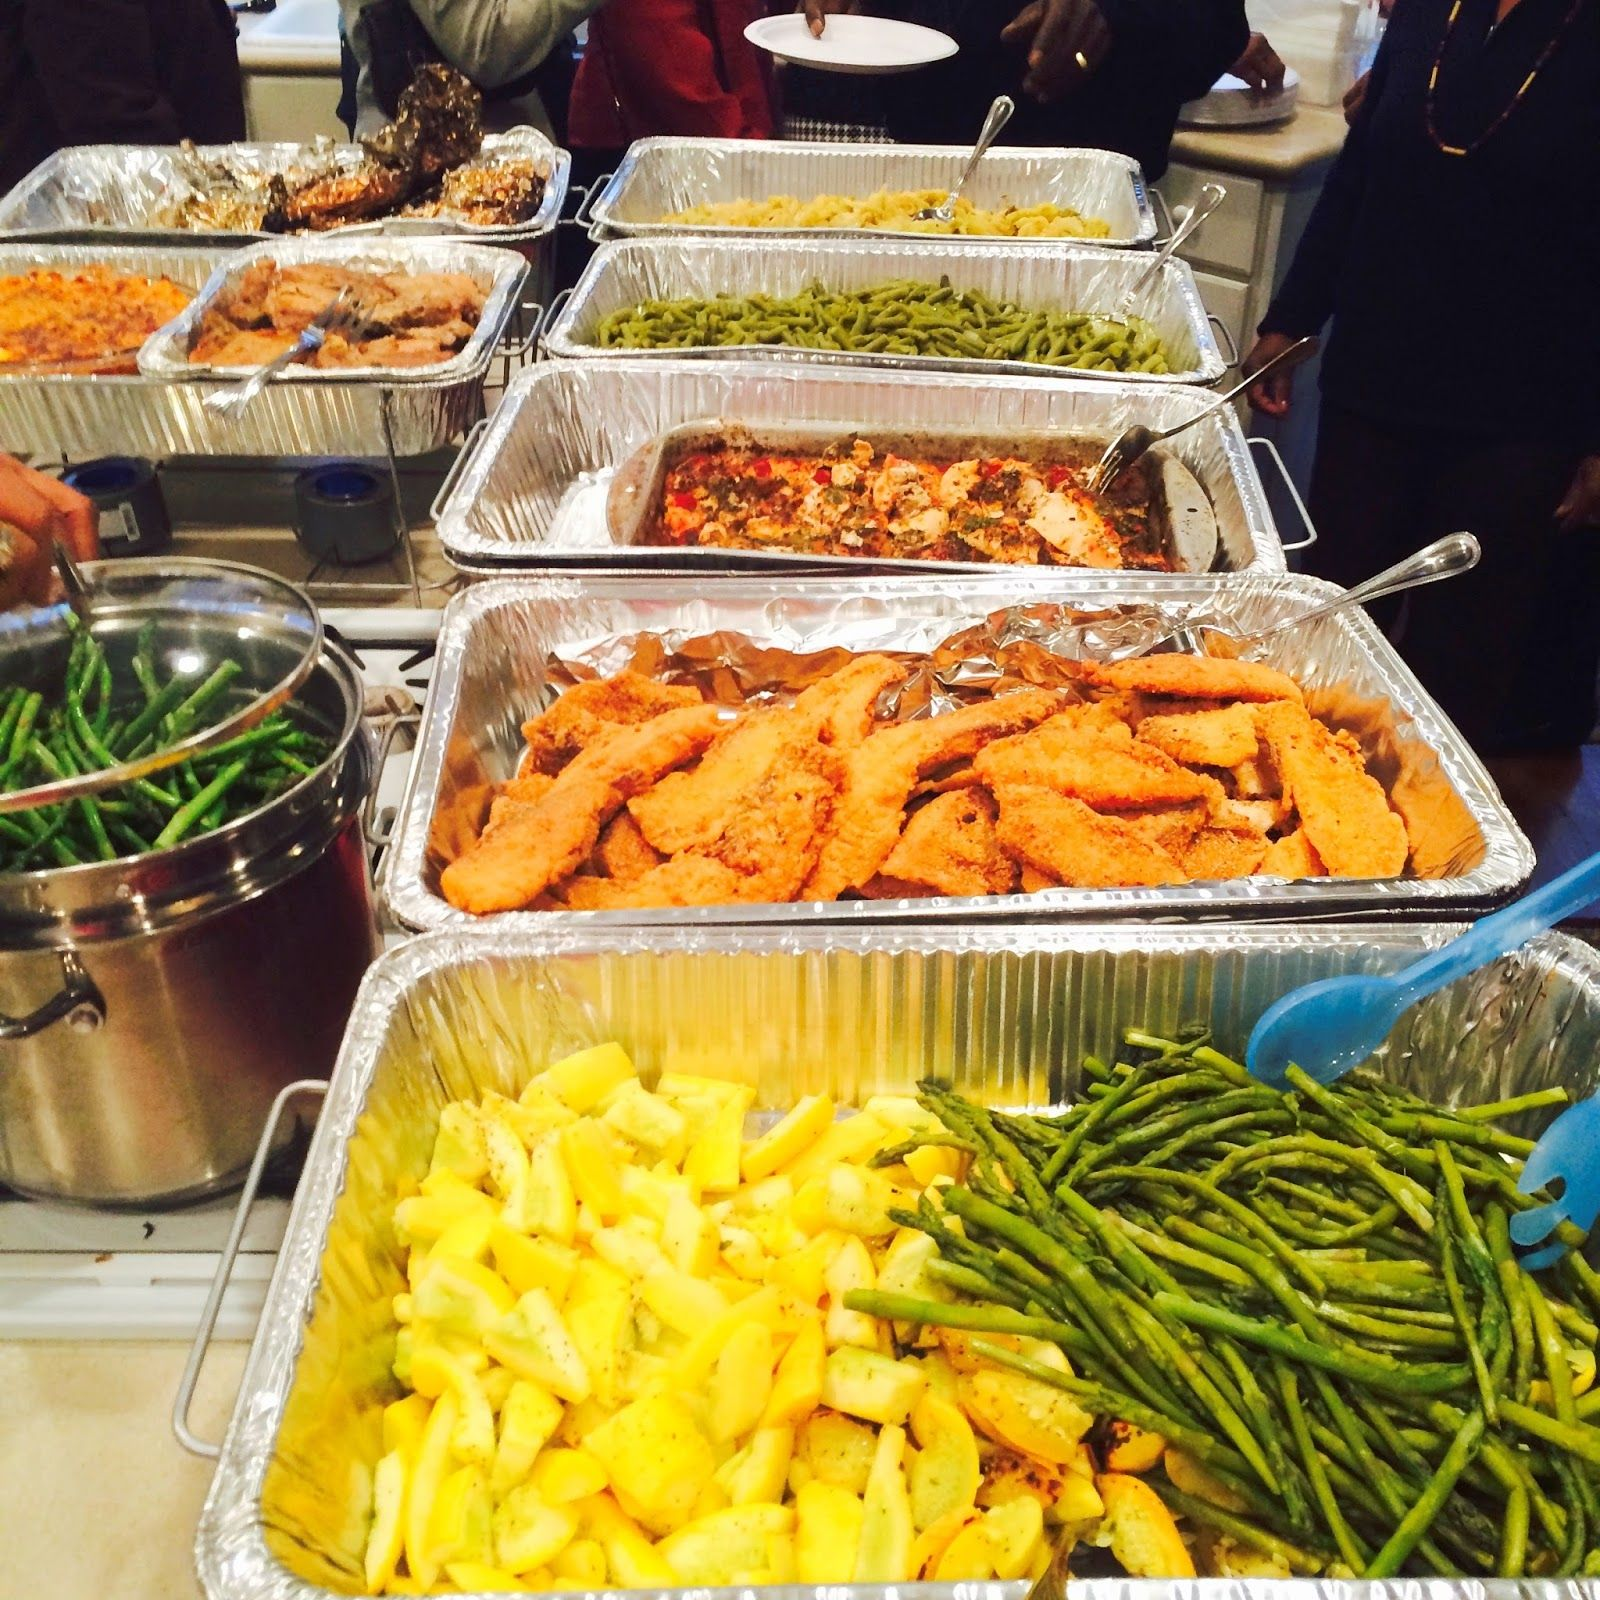 Wedding Reception Dinner Ideas On A Budget: Cooking A Diverse Meal For A Large Group (on A Budget